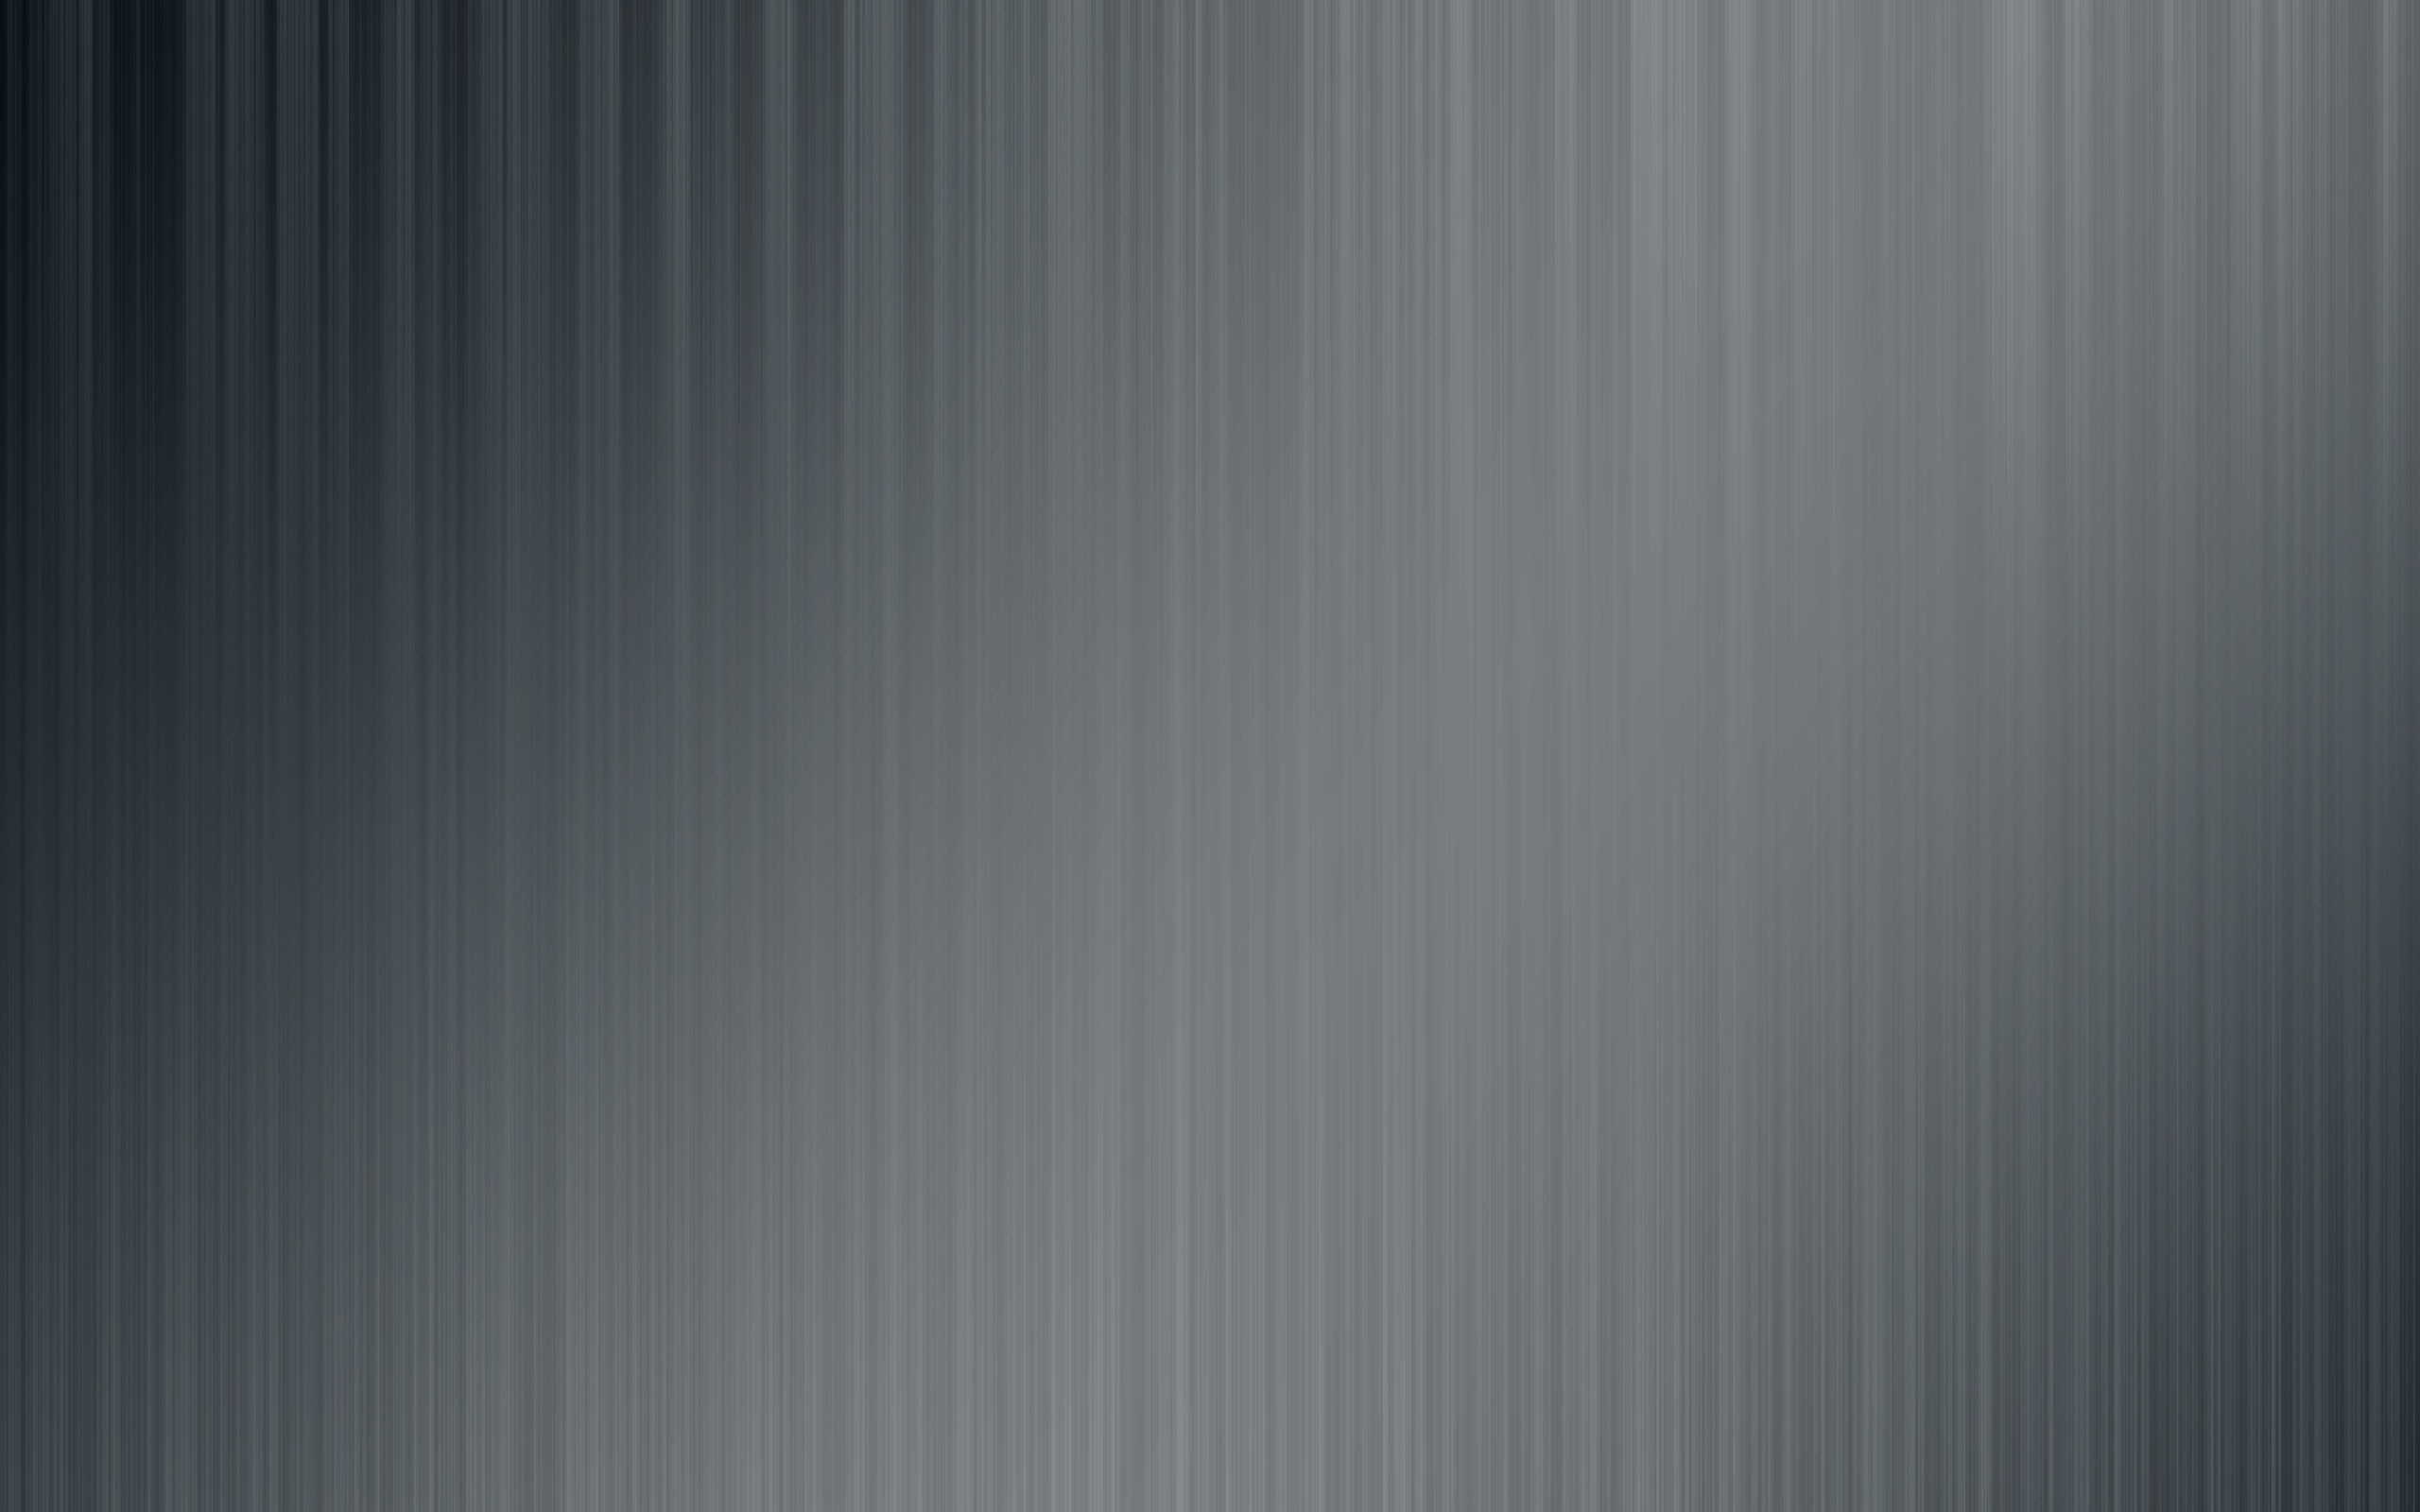 Gray Texture wallpapers and images – wallpapers, pictures, photos